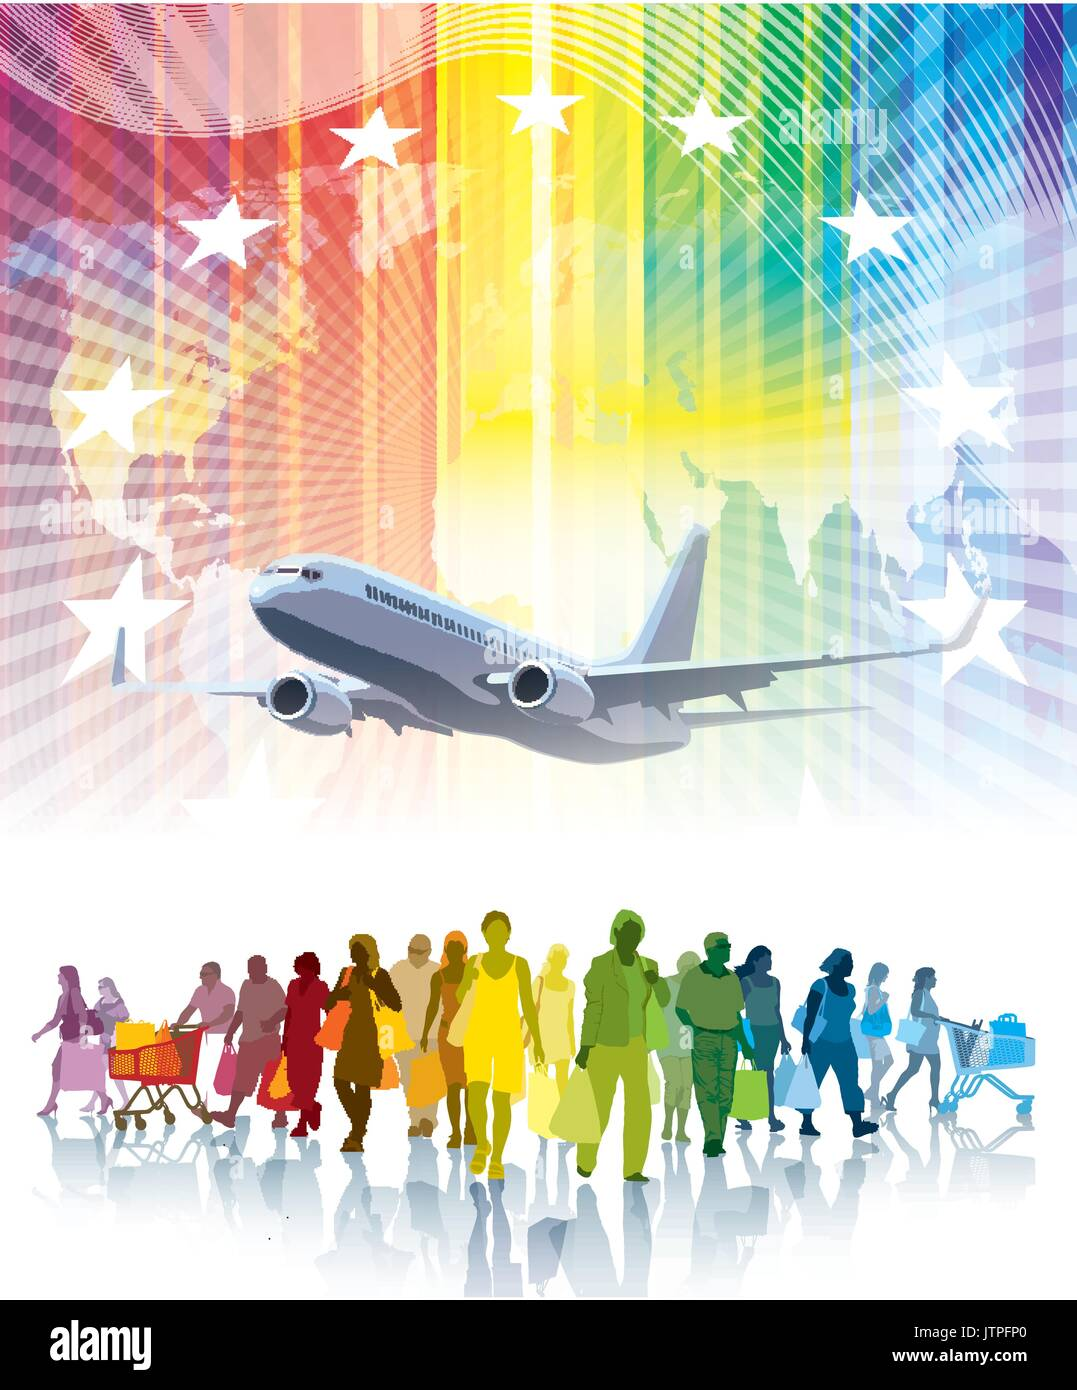 Colorful crowd of shopping people, flying airplane and a world map in the background. - Stock Vector